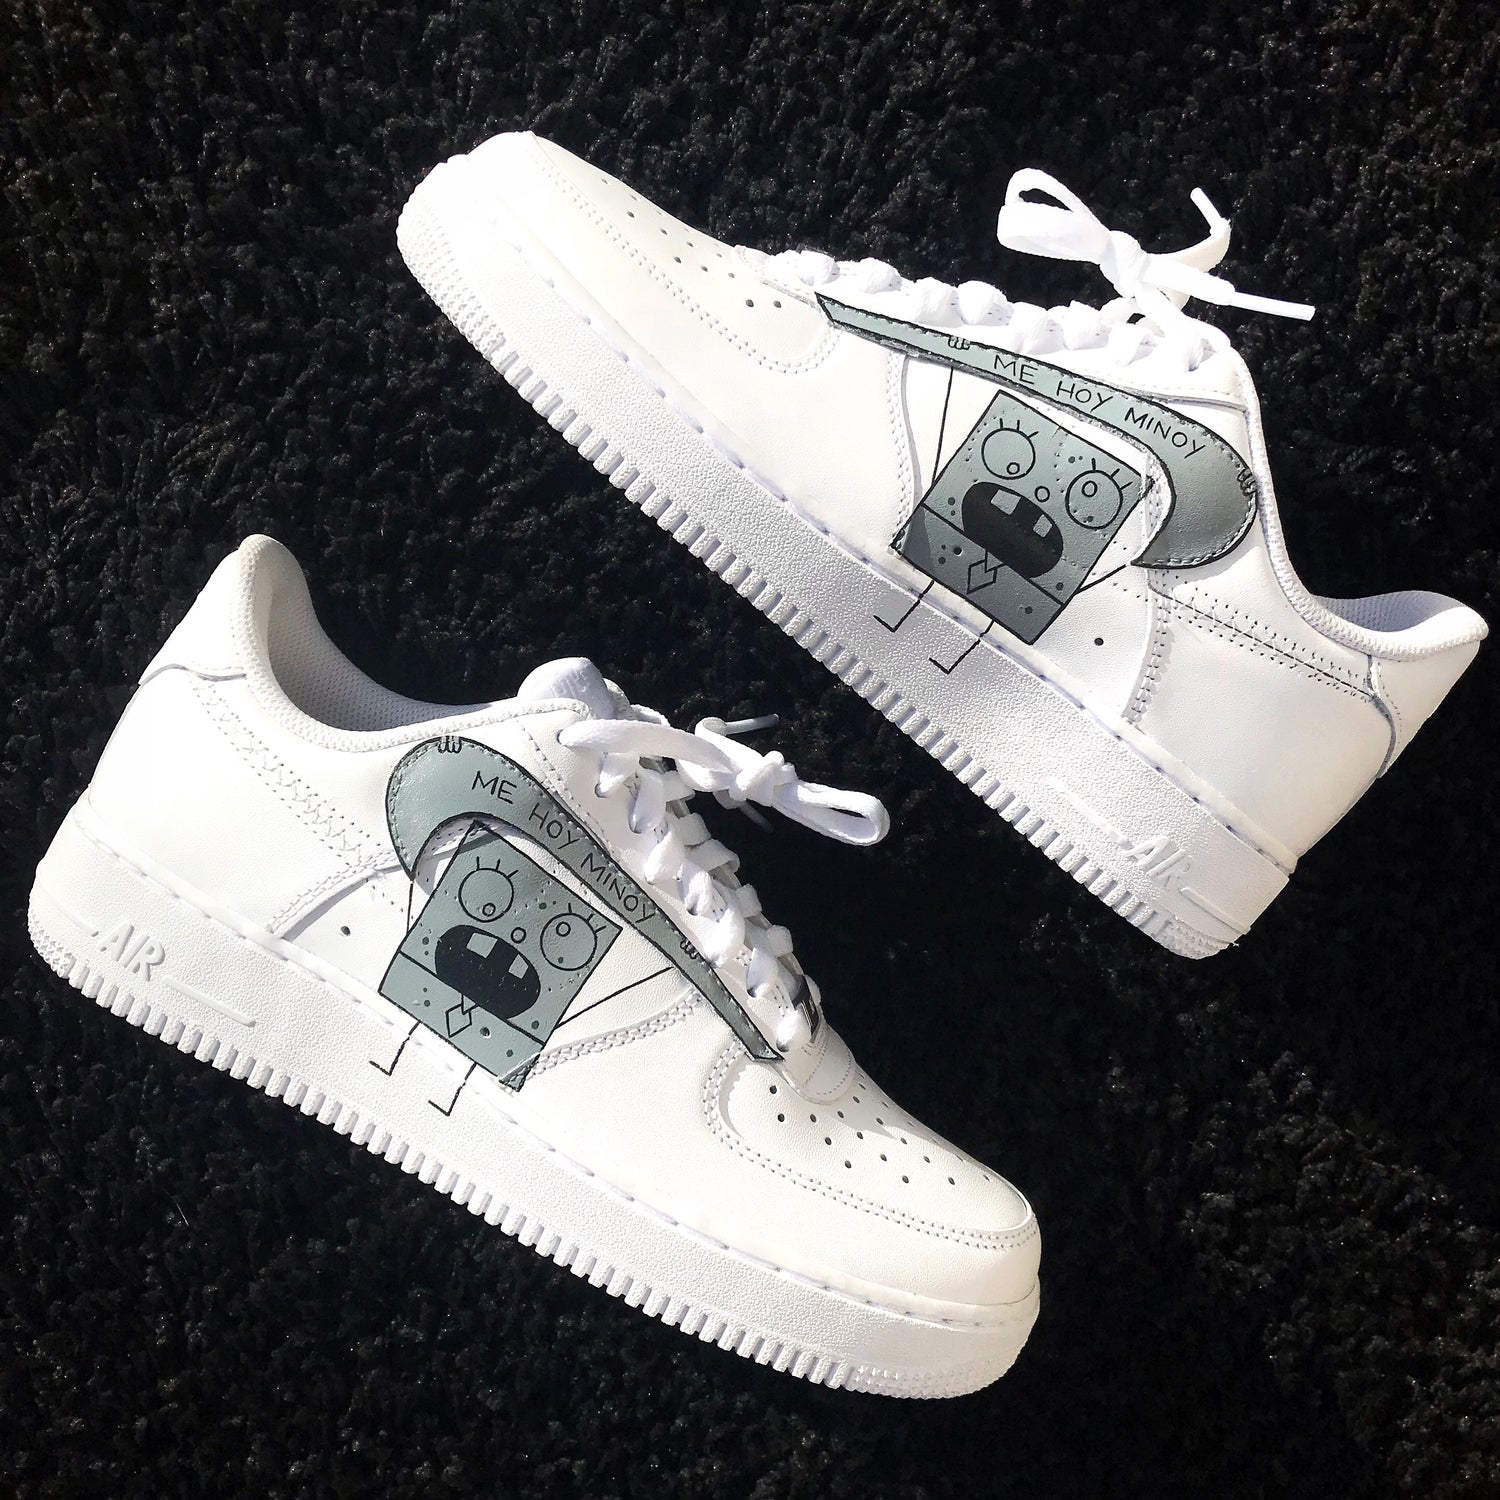 get new new product best website Doodlebob Inspired Air Force 1 | SMcustomsIE